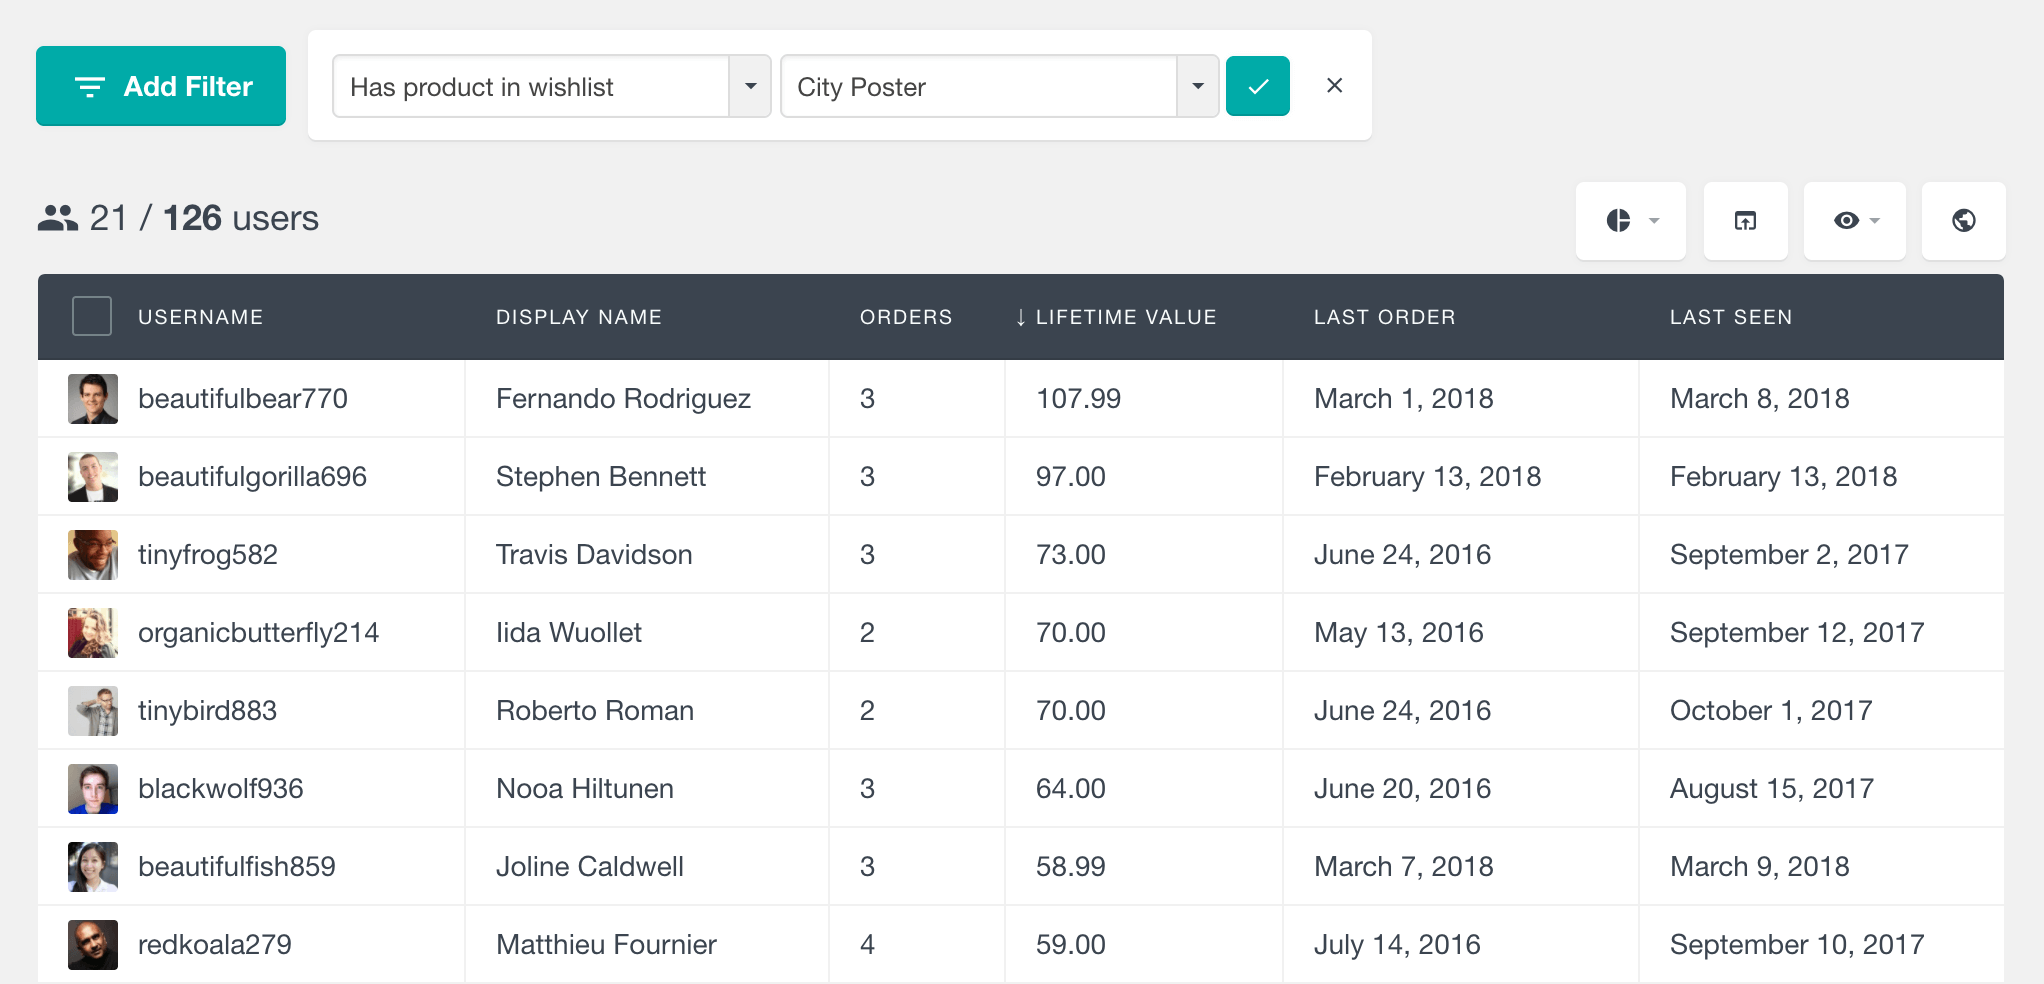 Filter WooCommerce customers by product in wishlist